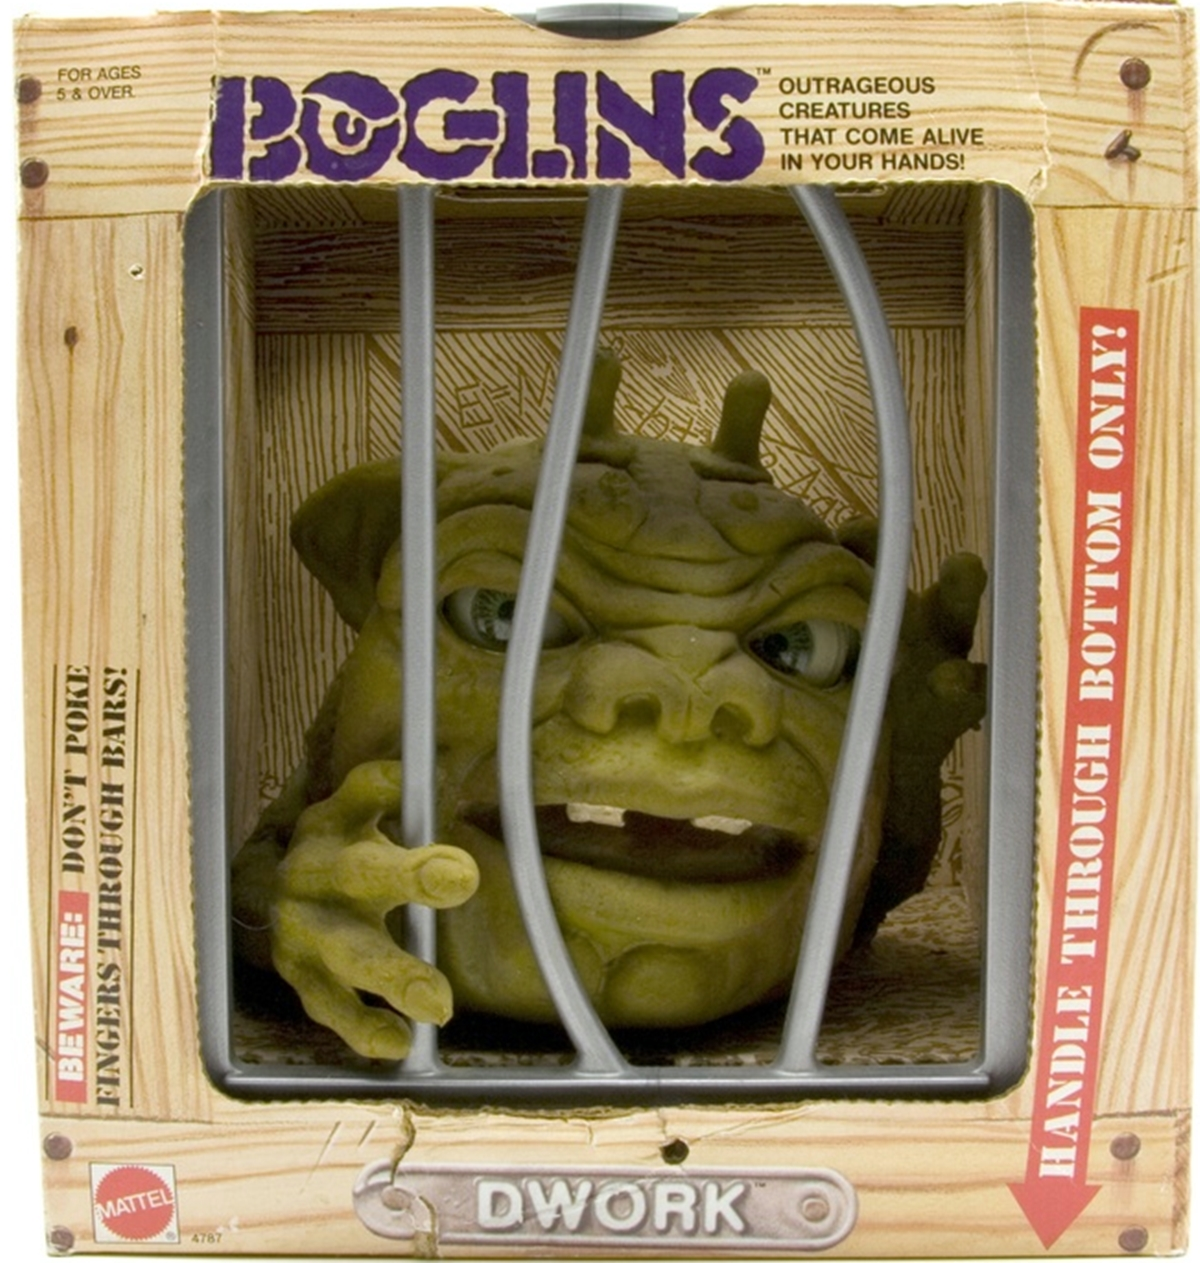 1 2 26 Toys From Your Childhood We Bet You've Forgotten About